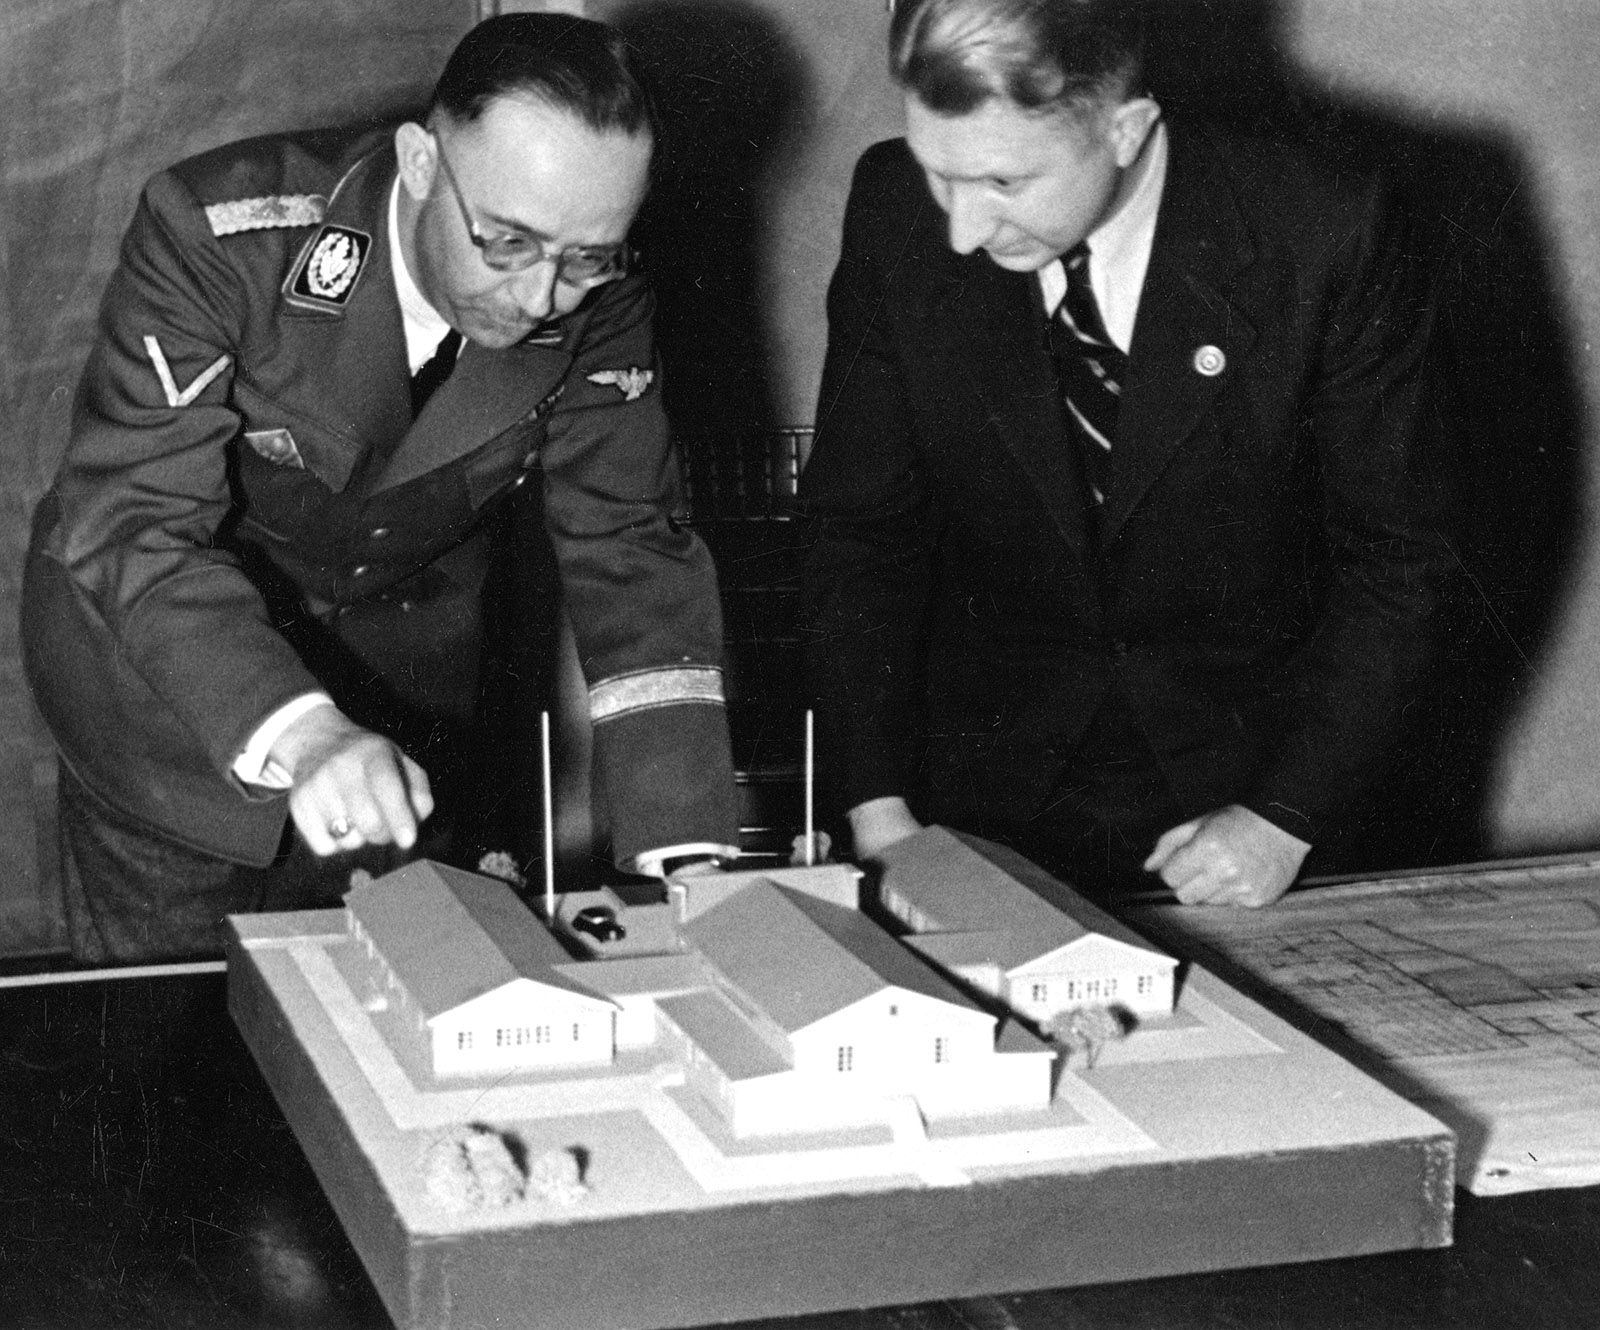 Heinrich Himmler looking at a model with Edgar Haller, who oversaw the design of soldiers' housing during the Nazi occupation of Norway